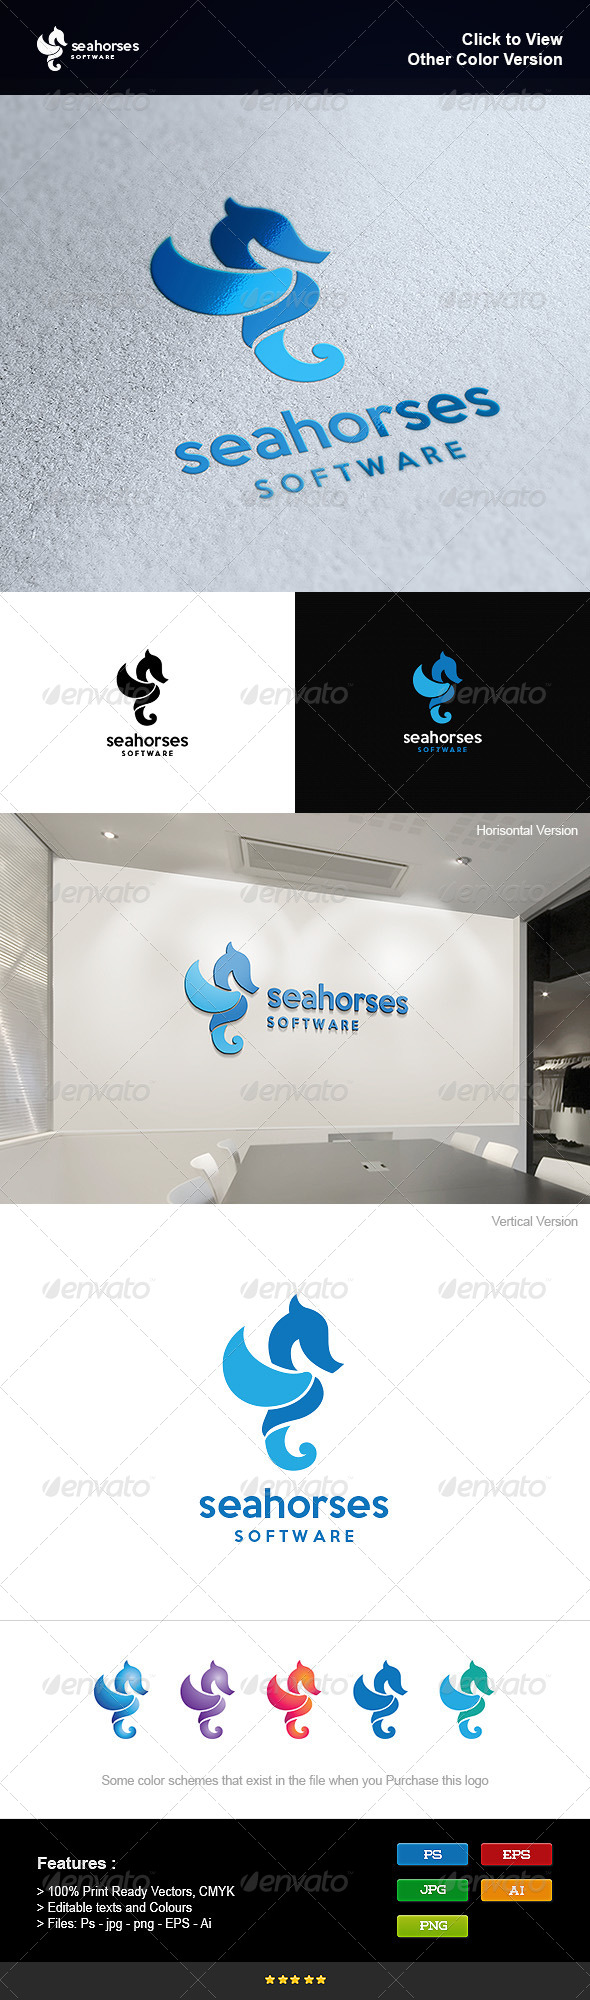 GraphicRiver Sea Horses Software 8251077